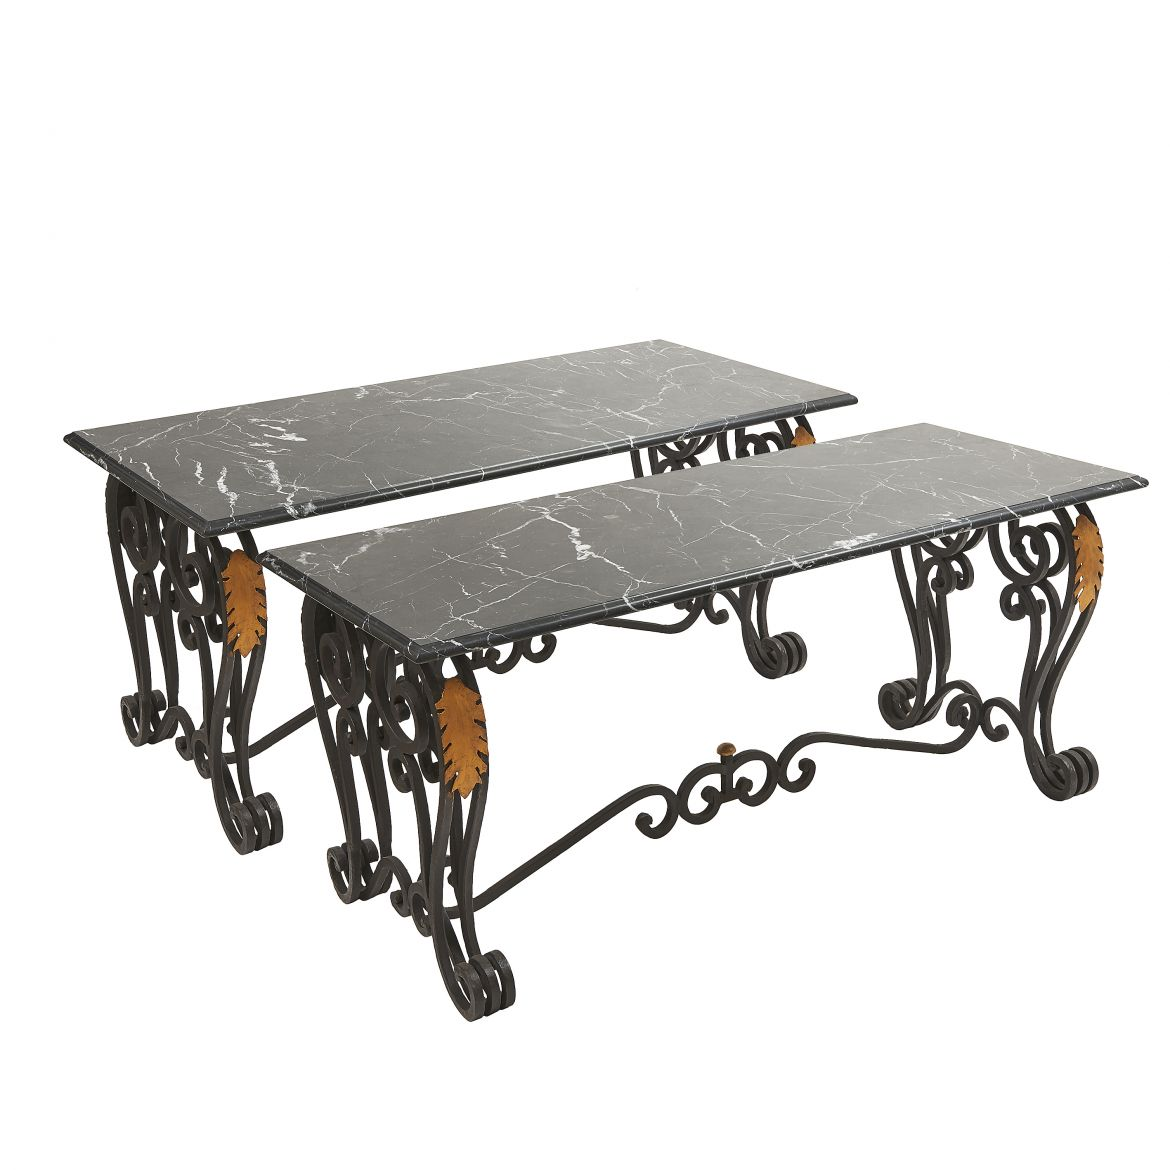 Pair Wrought Iron Tables with Marble Tops